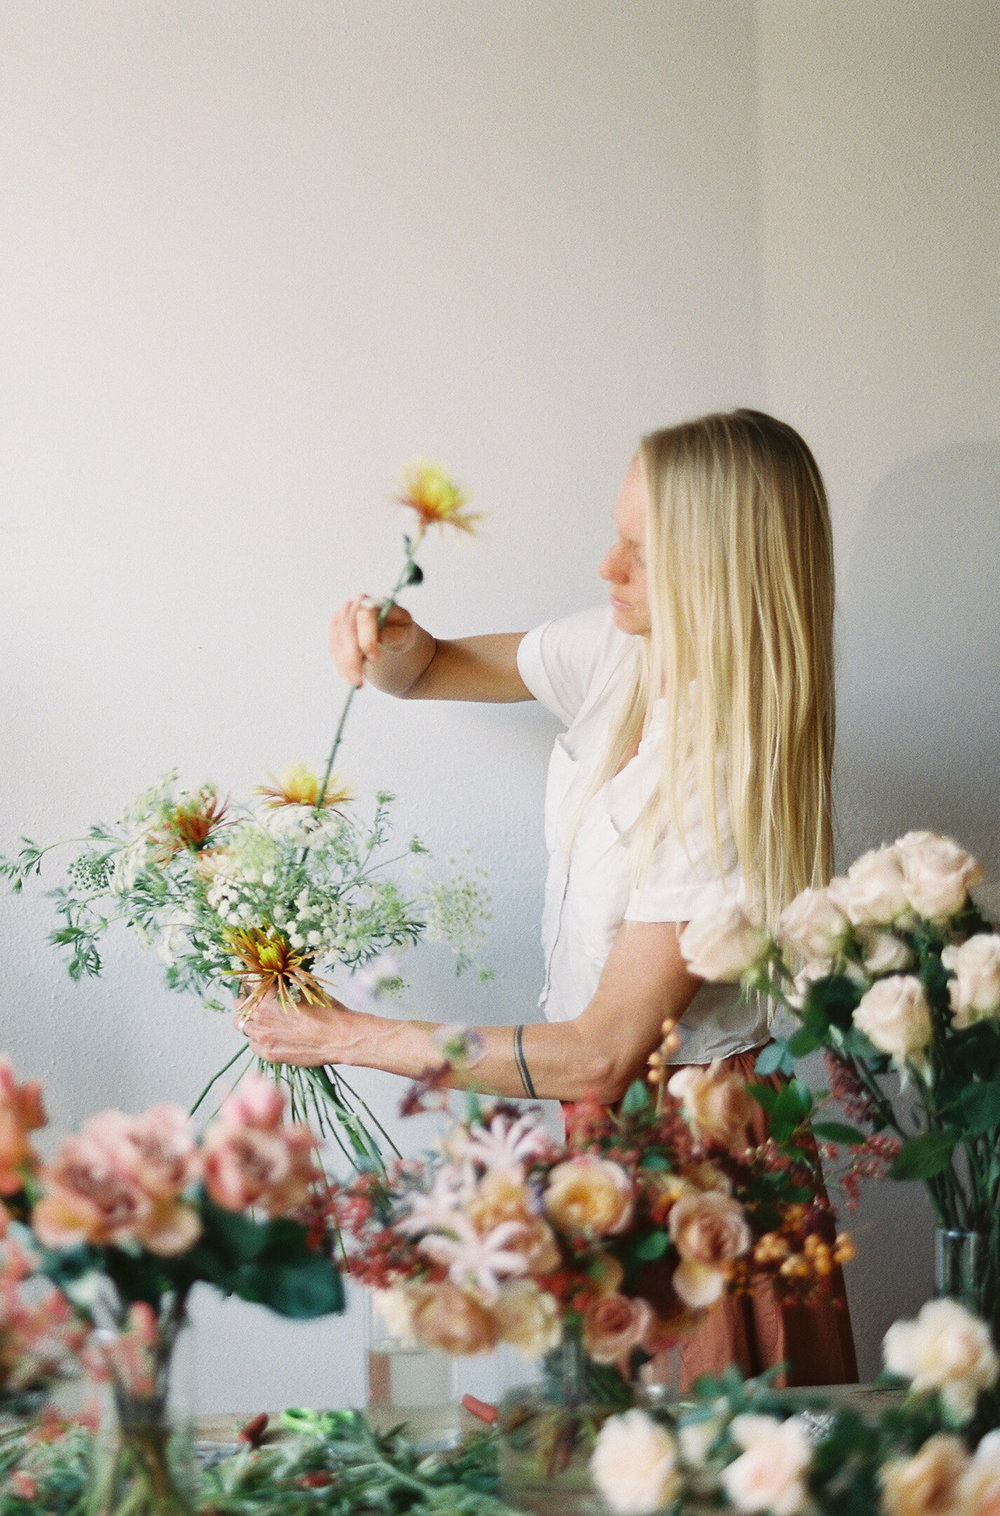 NECTAR + BLOOM || Bridal Bouquet of Wild Flowers + Mums + Garden Roses in Process  || Sposto Photography || #fineartweddingflowers #fineartfloraldesign #fineartwedding #sandiegoweddingflorist #sandiegoflorist  #sandiegofloraldesigner #fineartweddingbouquet #bridalbouquet #bridalstyle #romanticwedding #weddingdetails #modernbride #modernbrialbouquet #bohemian #elegantbride #weddingfashion #fallbridalbouquet #autumbridalbouquet #fallflowers #gardenroses #romanticwedding #romanticbridalbouquet